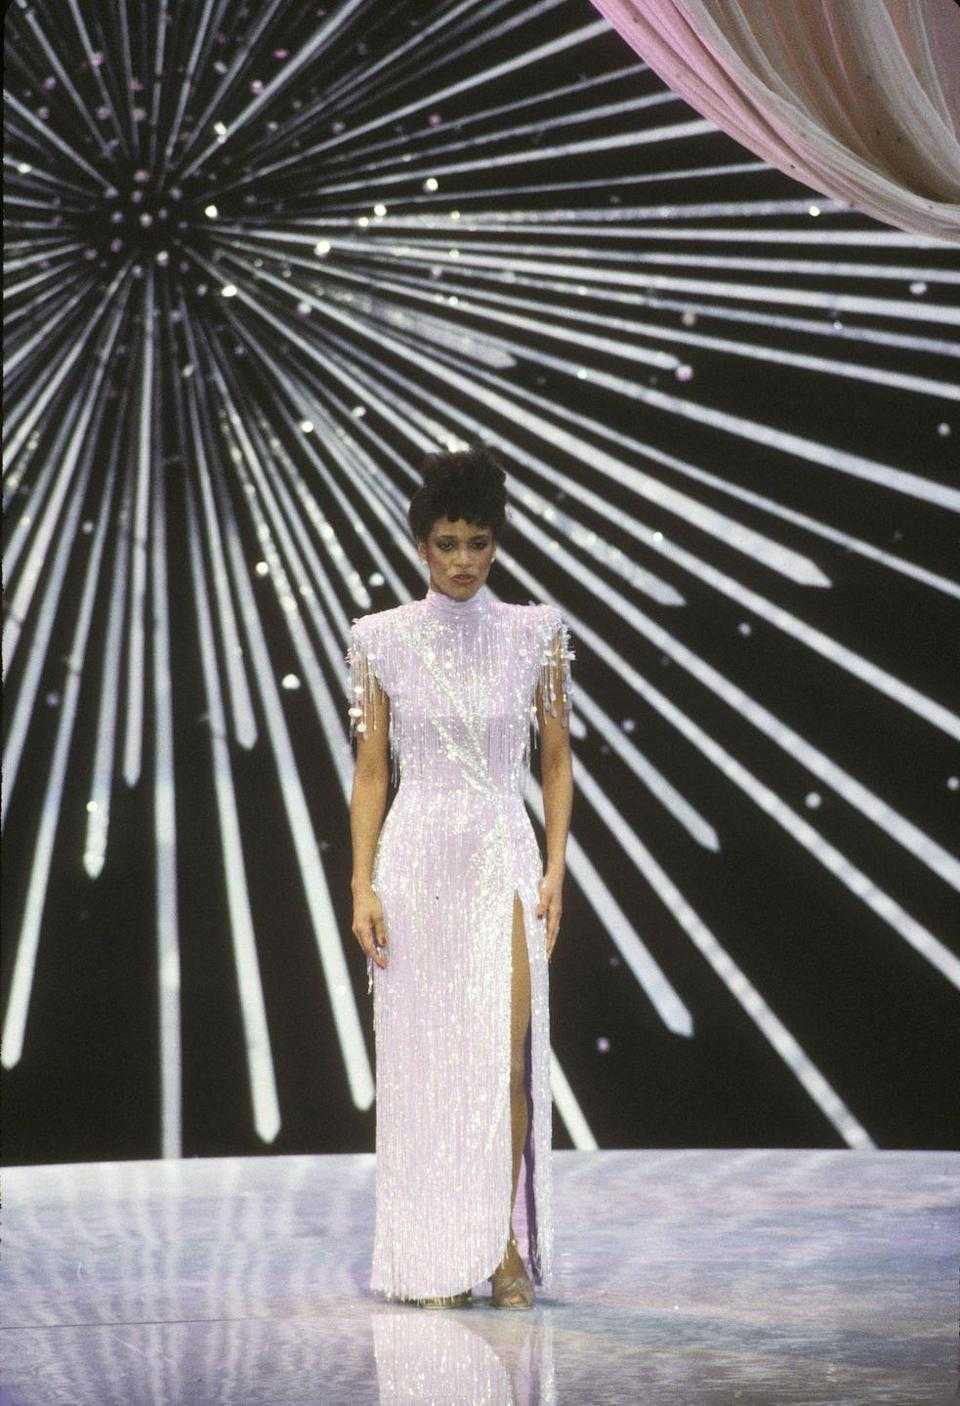 <p>A super high slit and a beaded fringe truly makes for a memorable AF Oscar look. The singer dazzled the crowd as she performed alongside Gregory Hines. </p>